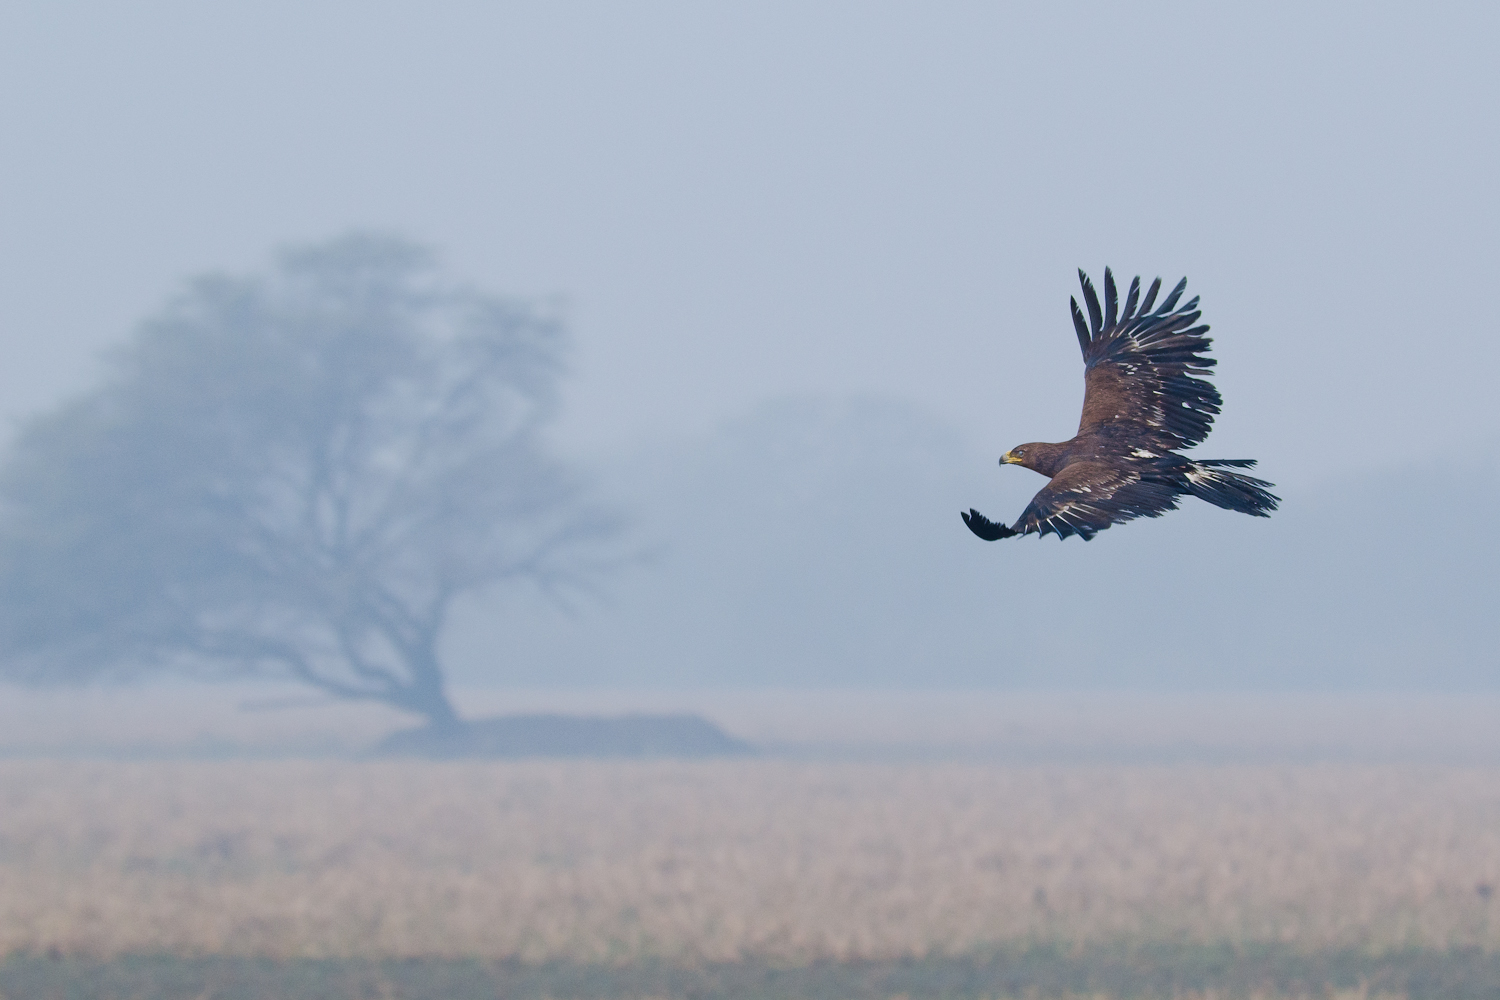 This greater spotted eagle was flying lonely & aimlessly over the grasslands in Bharatpur..the foggy ,misty morning as if contemplated the mood of the mighty raptor...